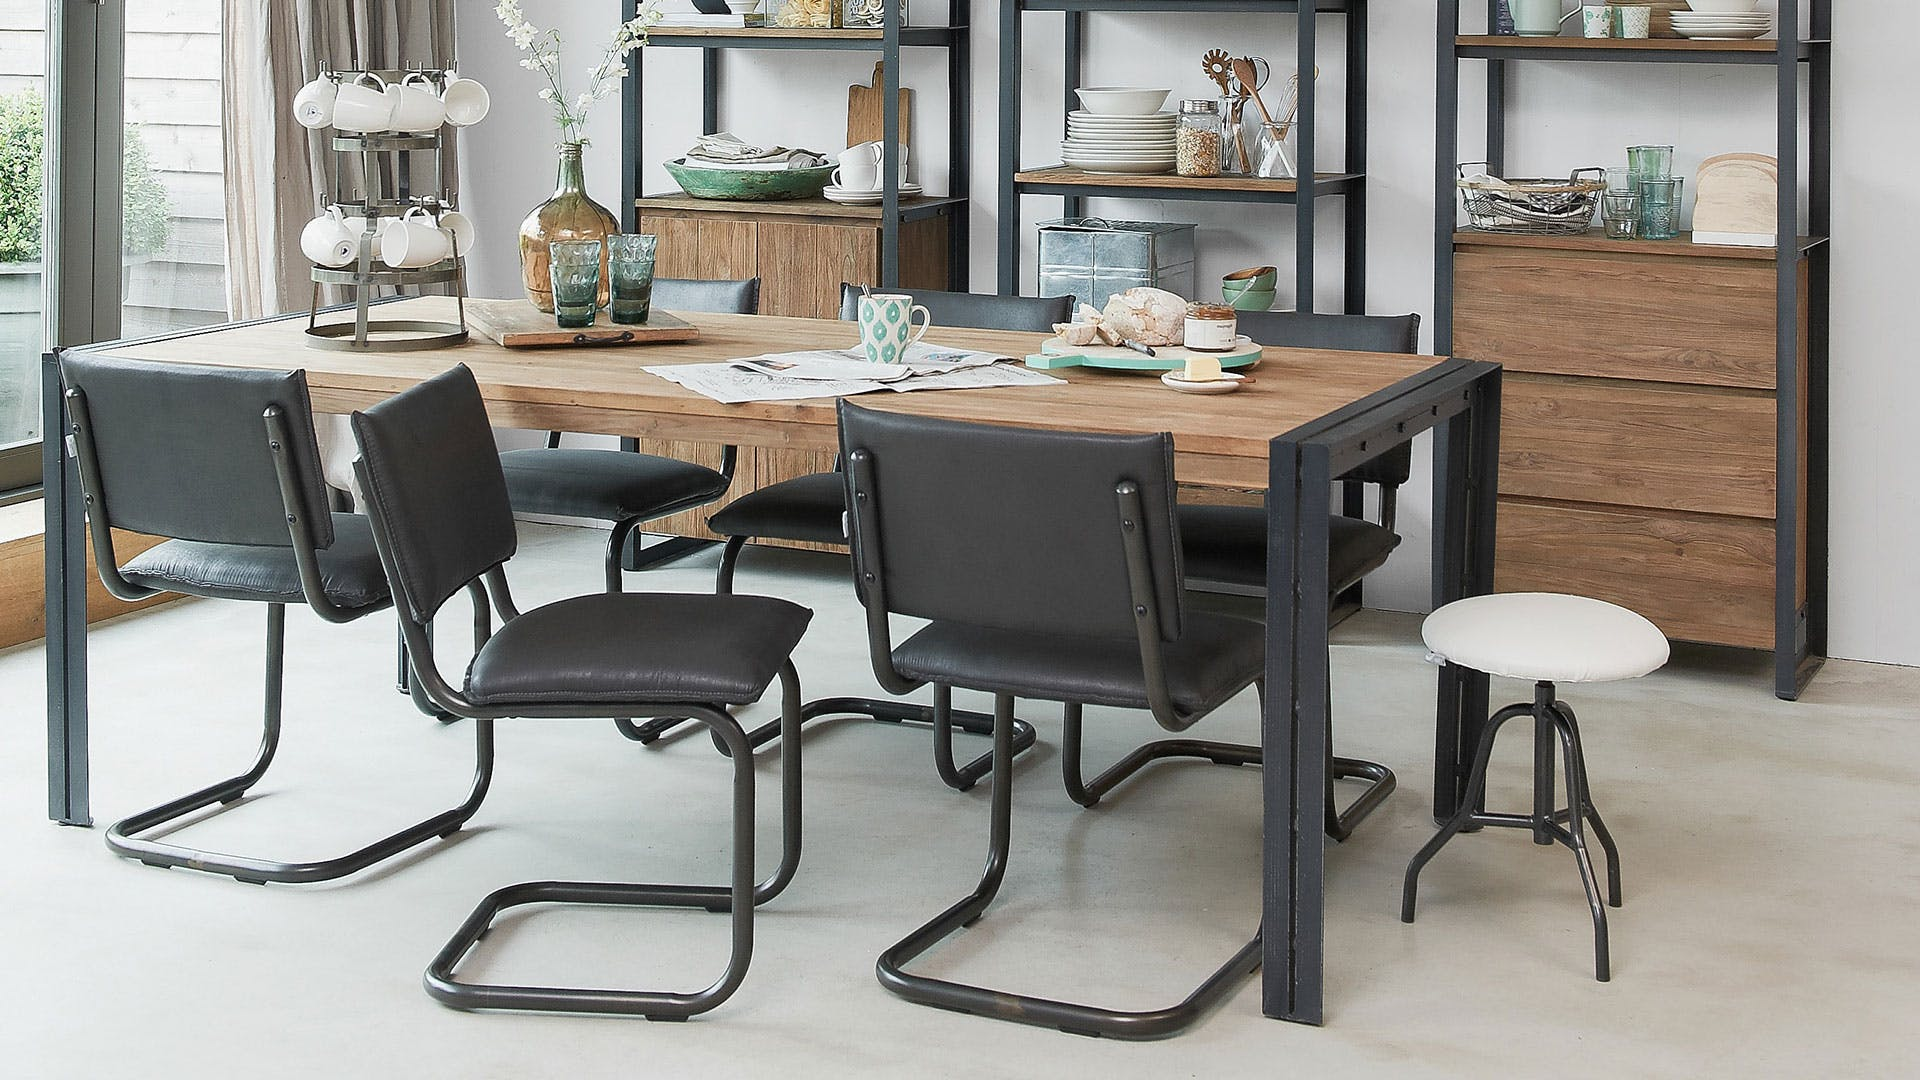 Fendy Dining Table By D Bodhi Collection